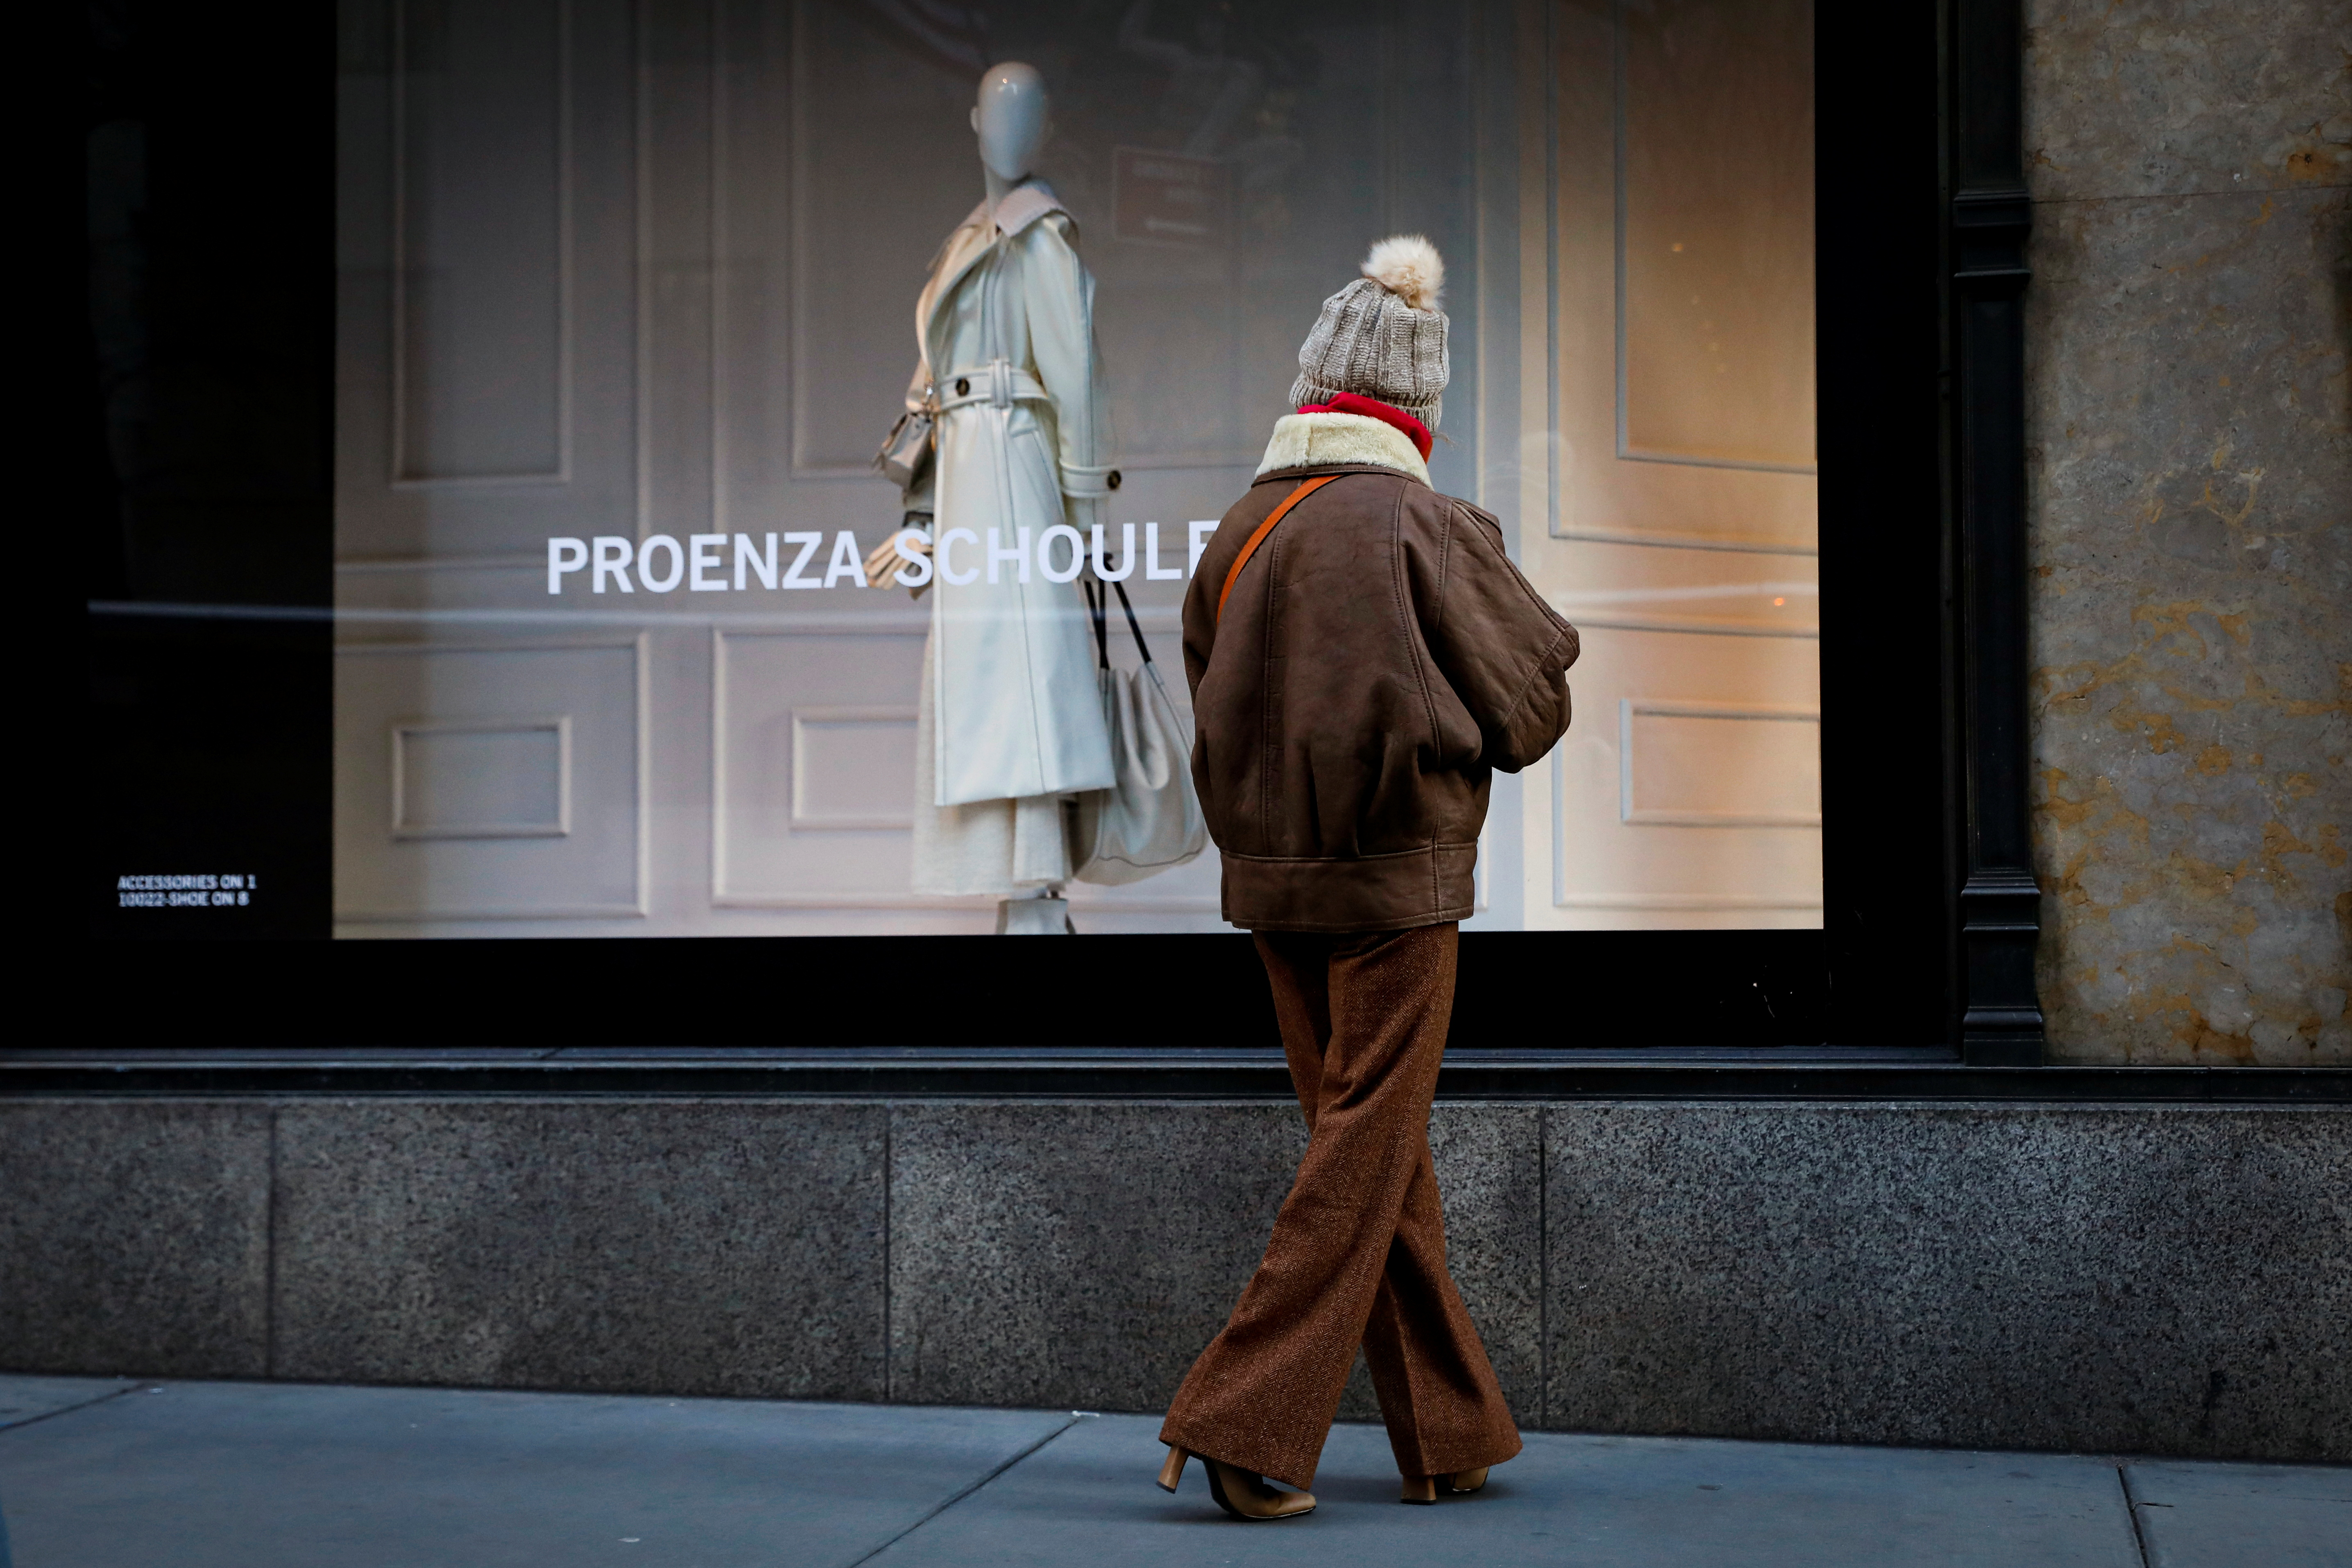 A woman looks at a window featuring fashion by Proenza Schouler at Saks 5th Ave, during the coronavirus disease (COVID-19) pandemic, in New York, U.S., February 17, 2021.  REUTERS/Brendan McDermid